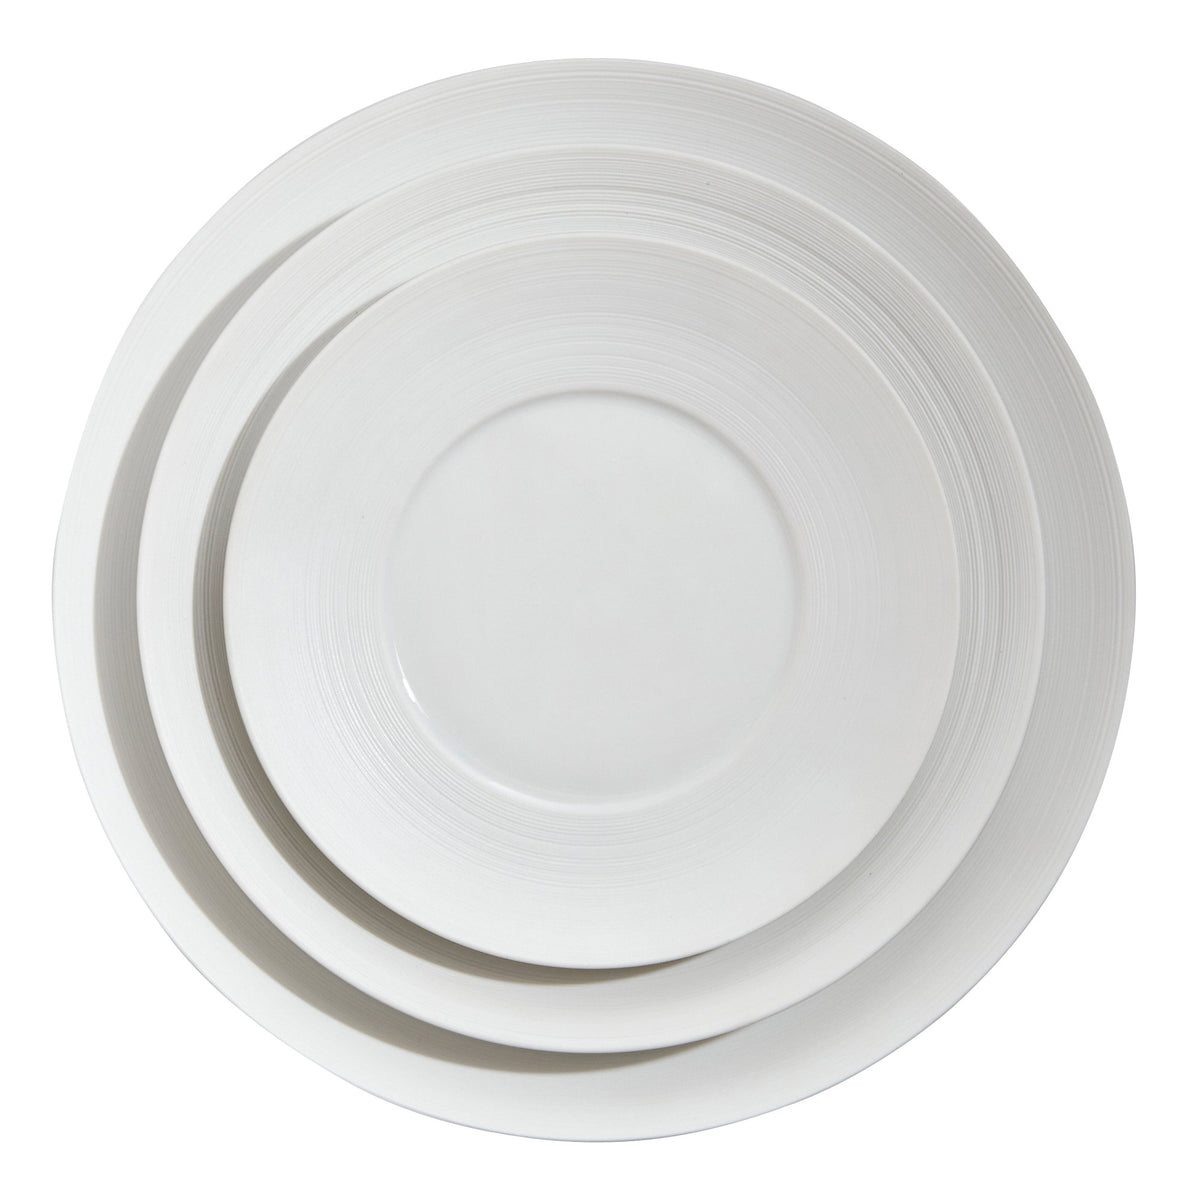 Hemisphere White Large Porcelain Center Dinner Plate